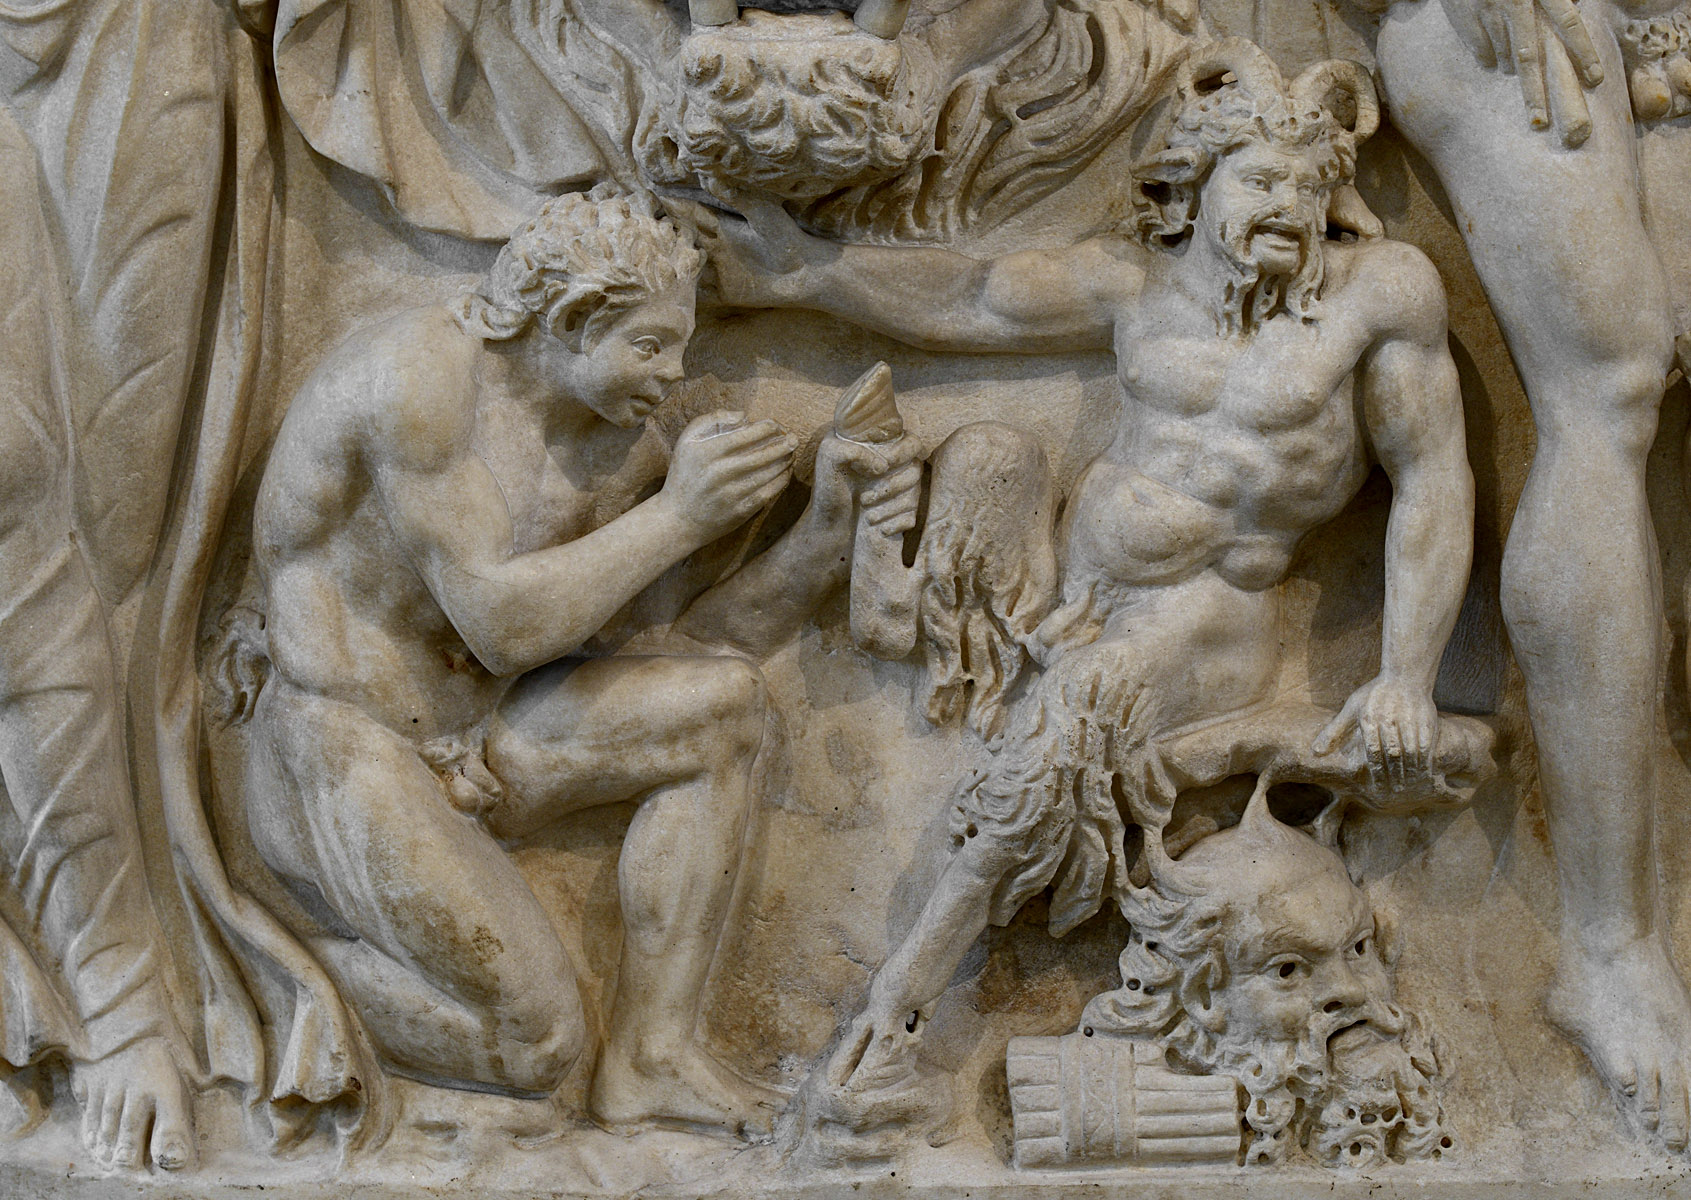 Satyr removing a splinter from a Pan's foot. A close-up of side 1 of sarcophagus with Dionysiaс scenes. Marble. Ca. 210 CE. Inv. No. II 1a 231. Moscow, the Pushkin Museum of Fine Arts